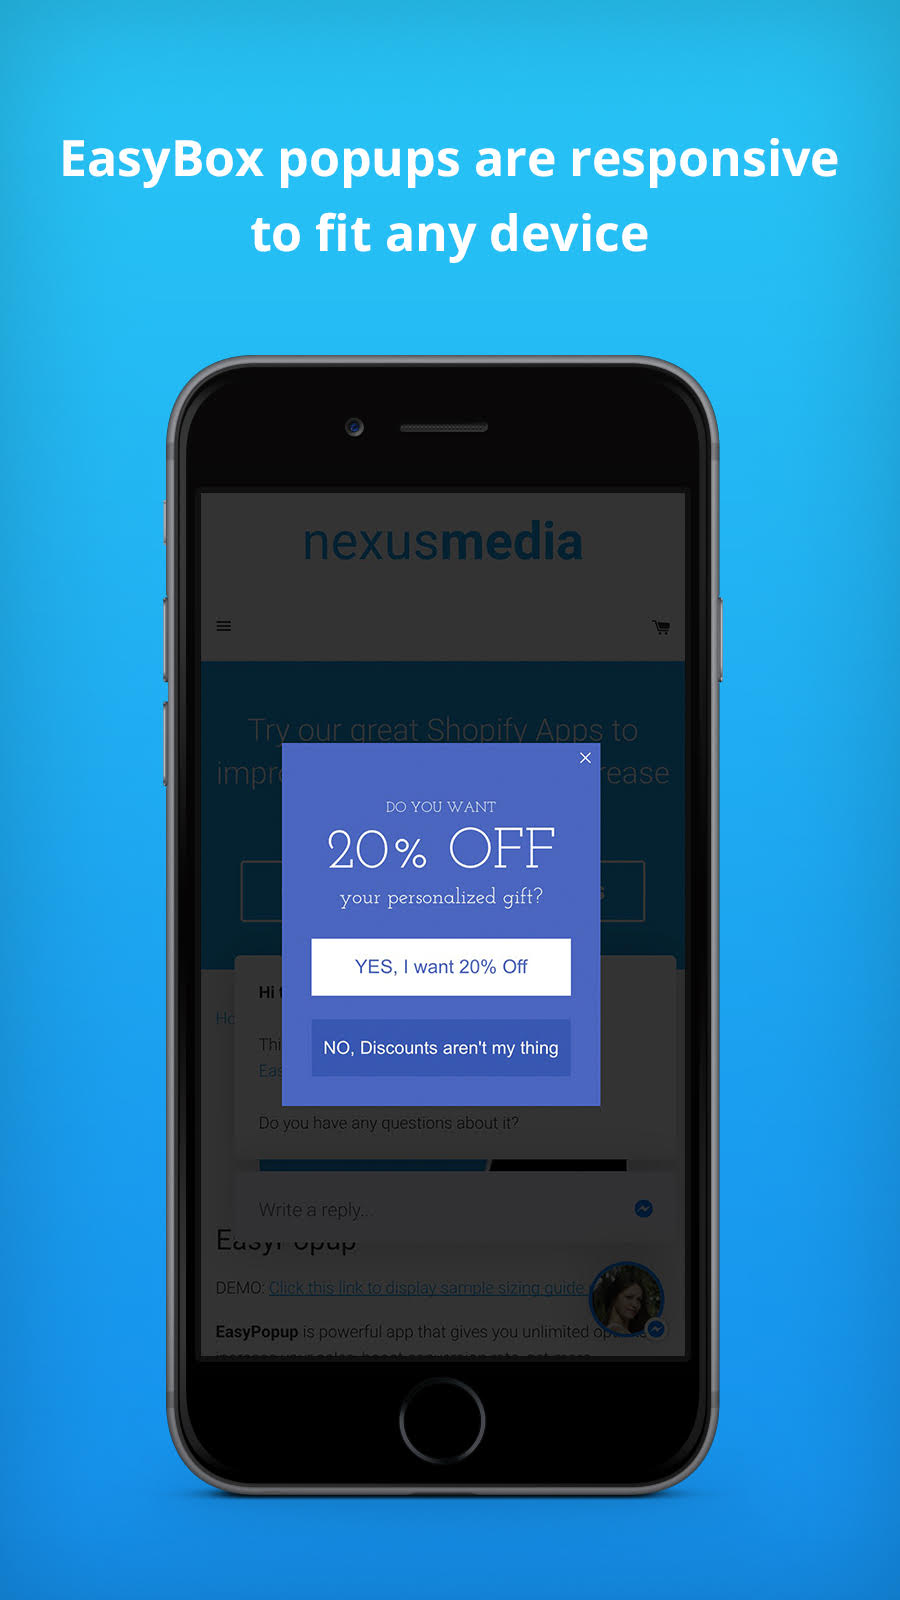 EasyBox popups are responsive to fit any device